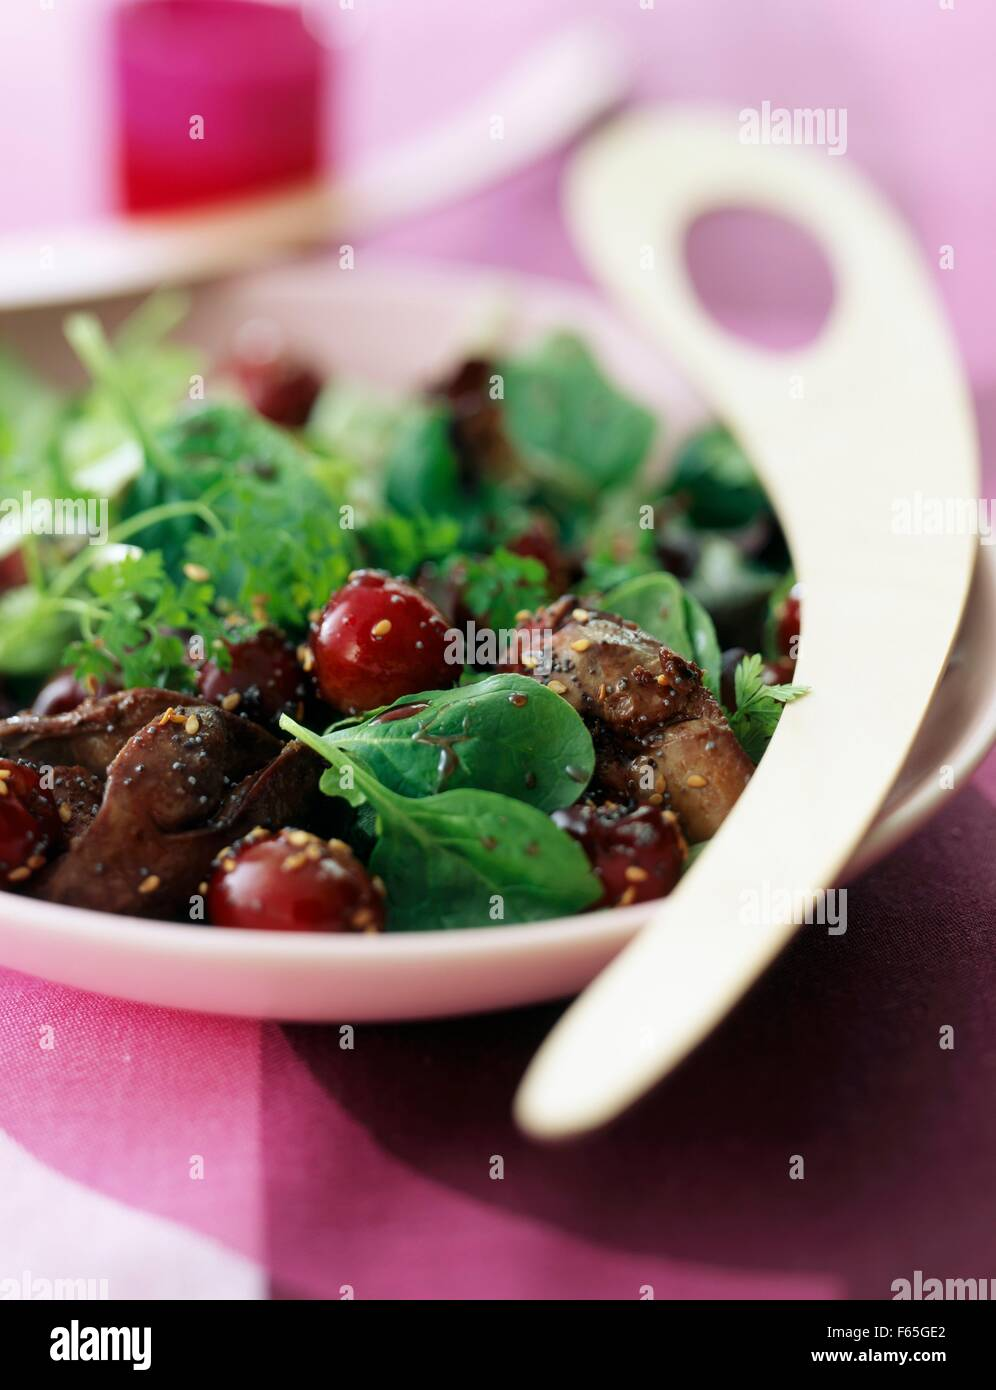 mesclun, poultry liver and cherry salad Stock Photo